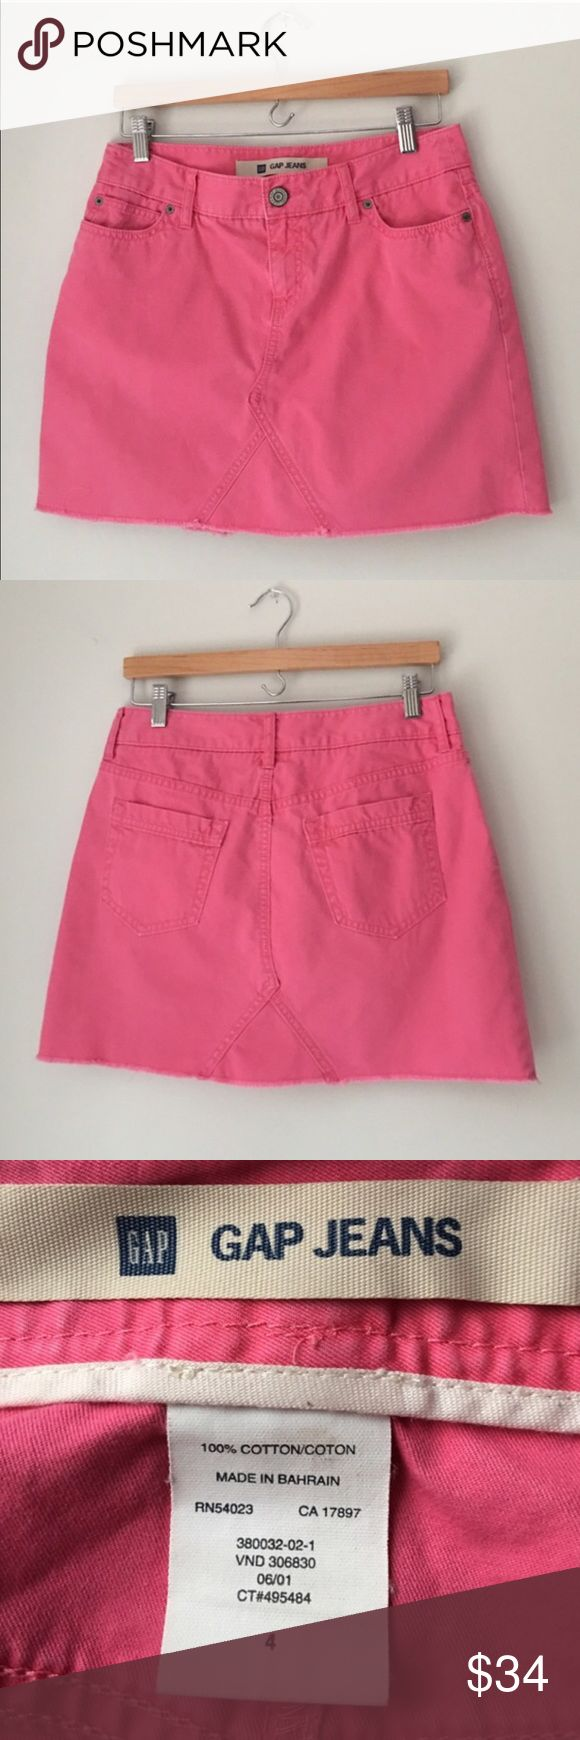 GAP Jeans Pink Denim Skirt Size 4 Beautiful pink Denim mini skirt by GAP Jeans. 2 front & 2 rear pockets. Front zip with single button closure. 100% cotton. Size 4. Excellent preowned condition. GAP Skirts Mini